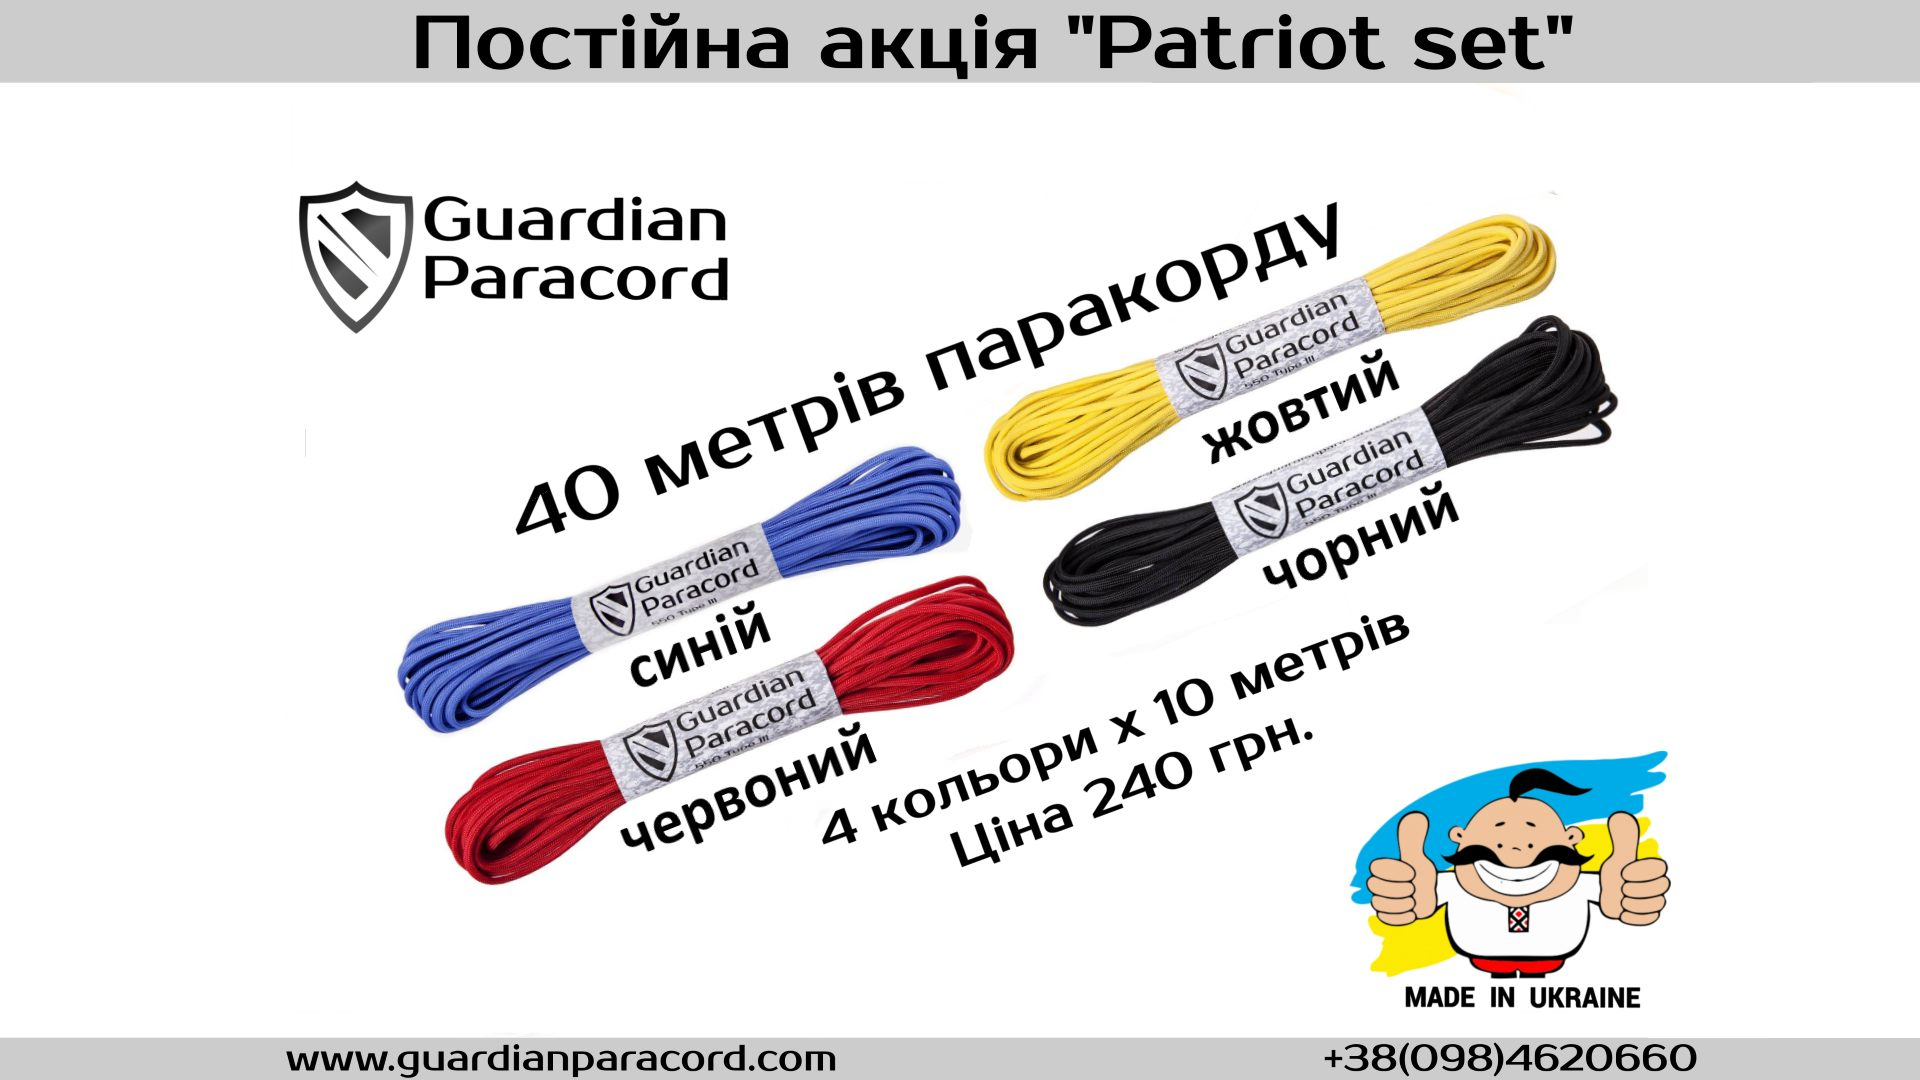 Patriot set